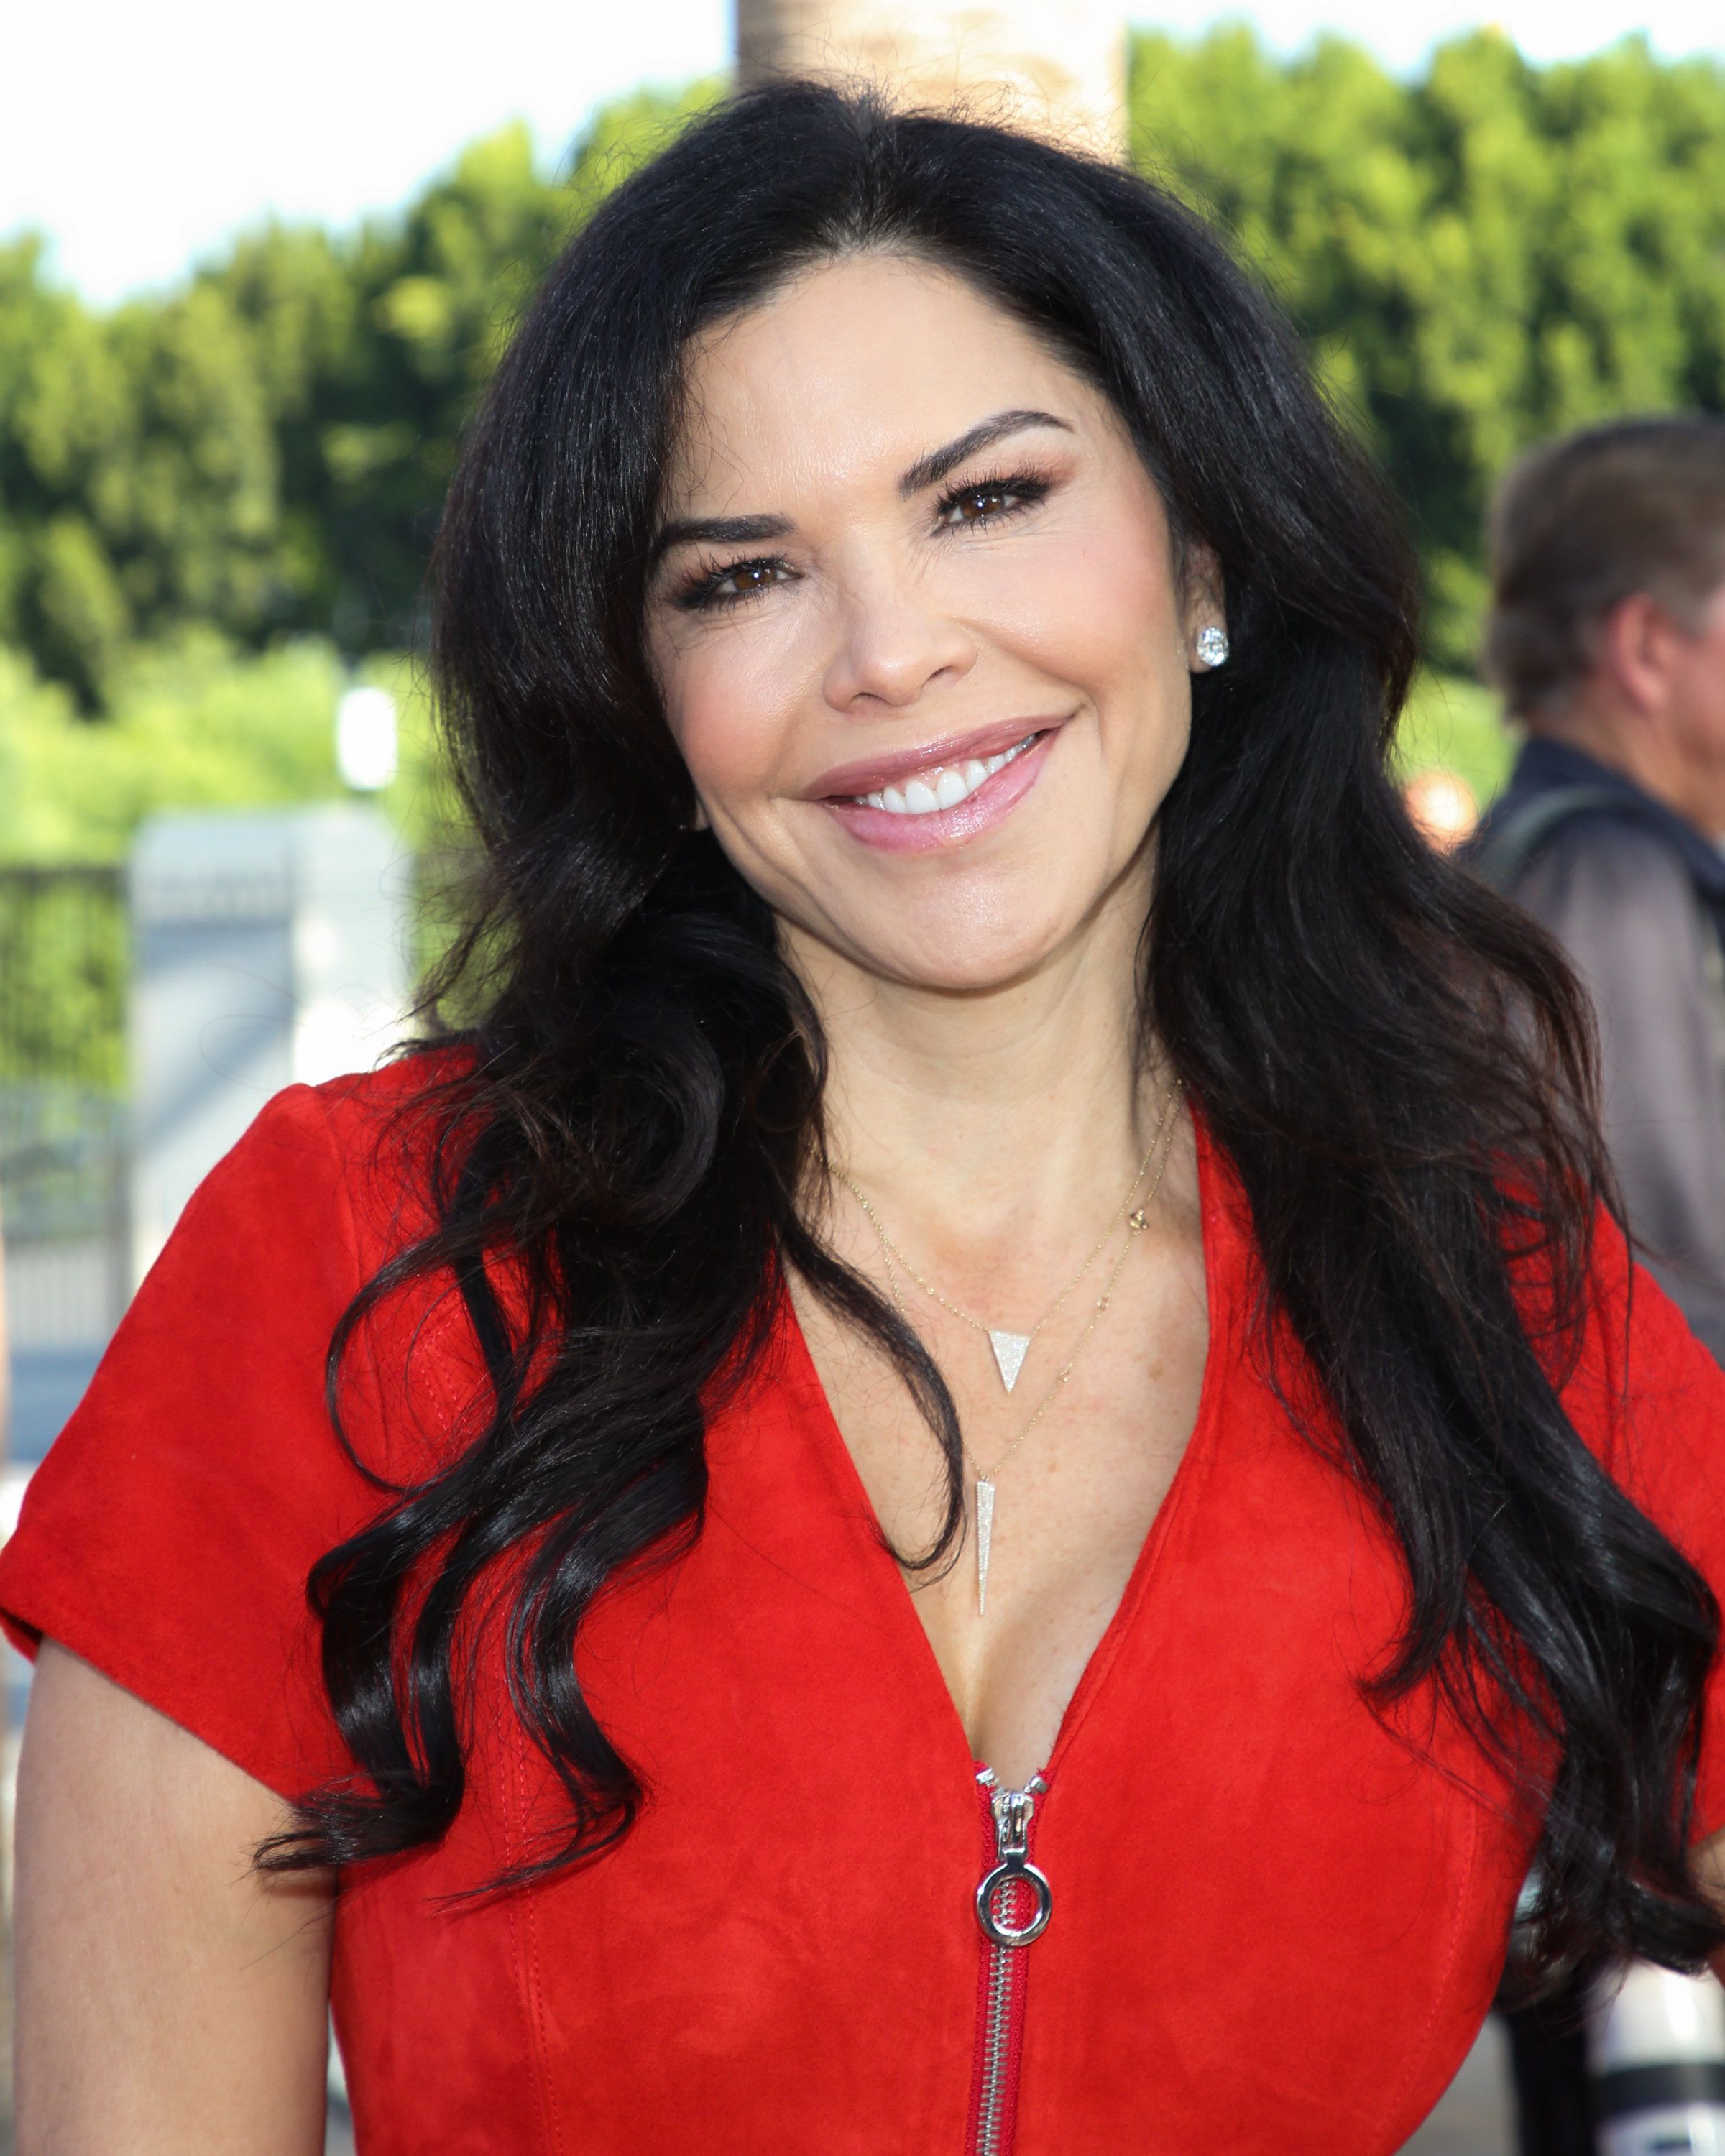 Research shows that descriptions of women are less likely to include their careers, and that has a negative ripple effect. (Just look at how news outlets described Lauren Sanchez when her romantic relationship with Amazon's CEO became public.)